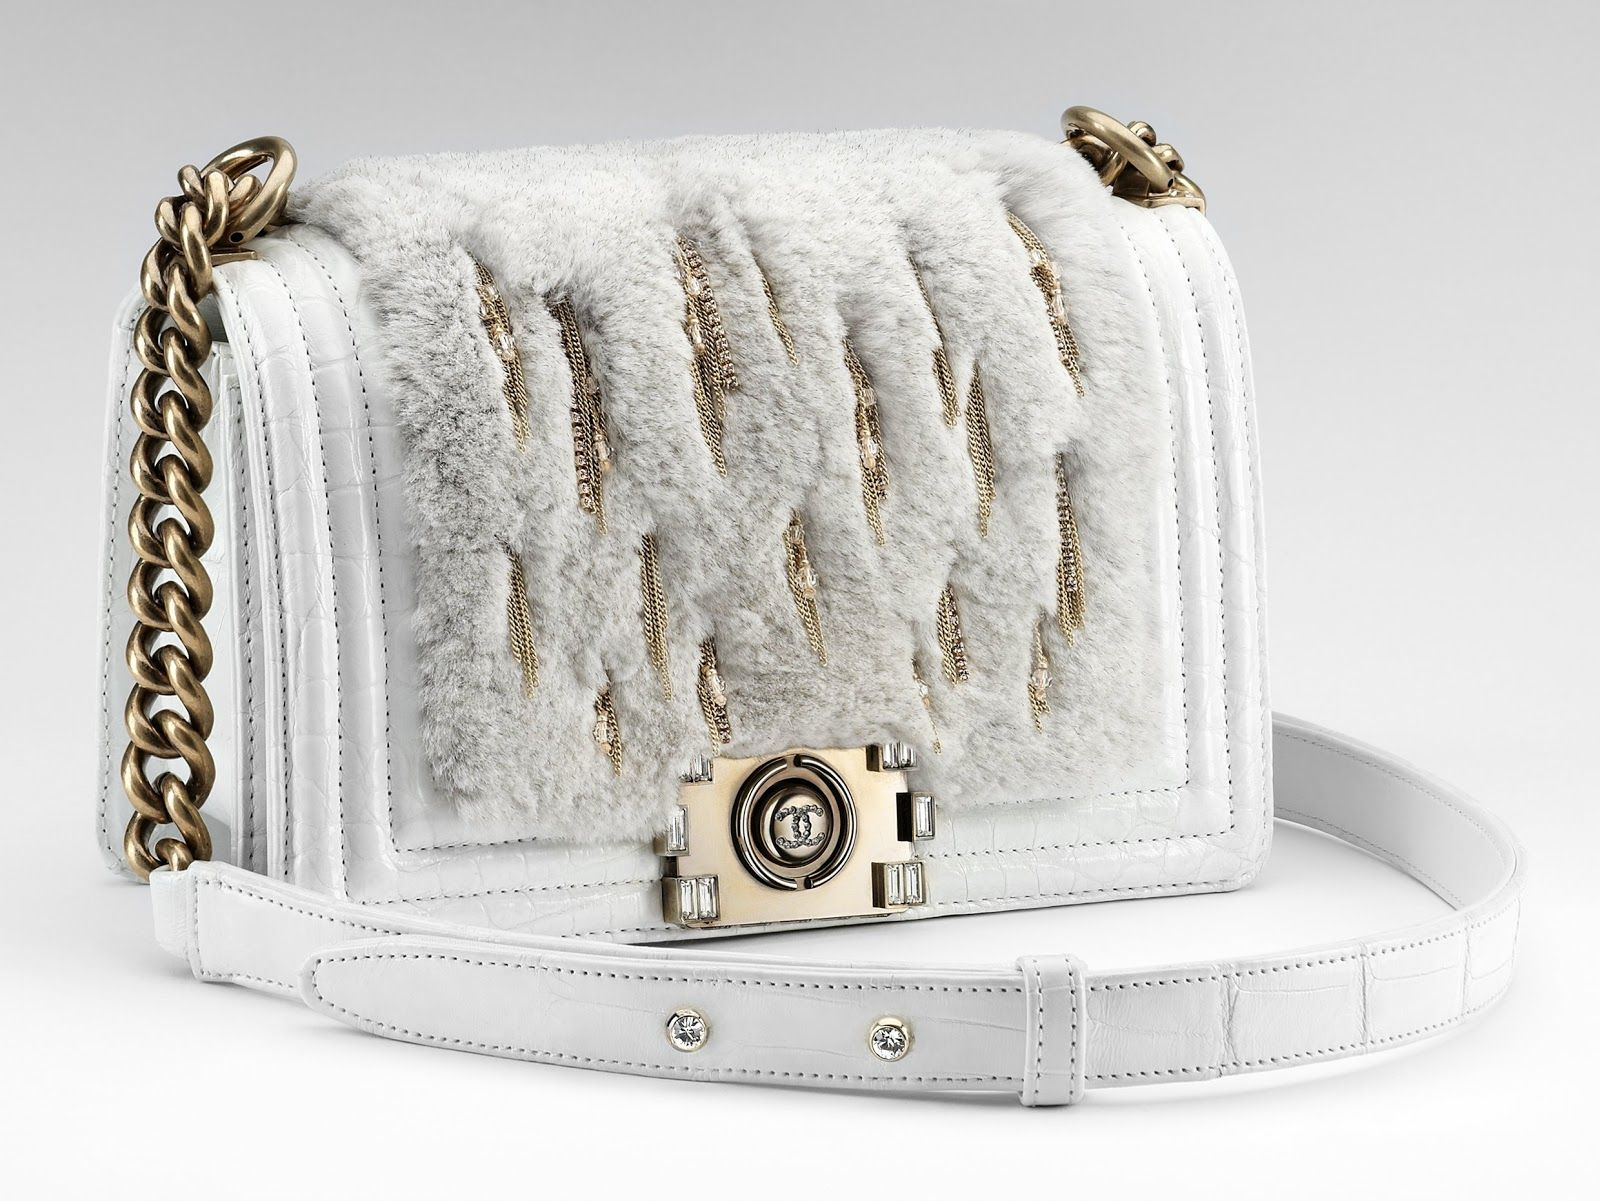 38c8cc5732b9 Chanel boy bag with rabbit fur (wish is was fake fur) and gold chains. OMG!